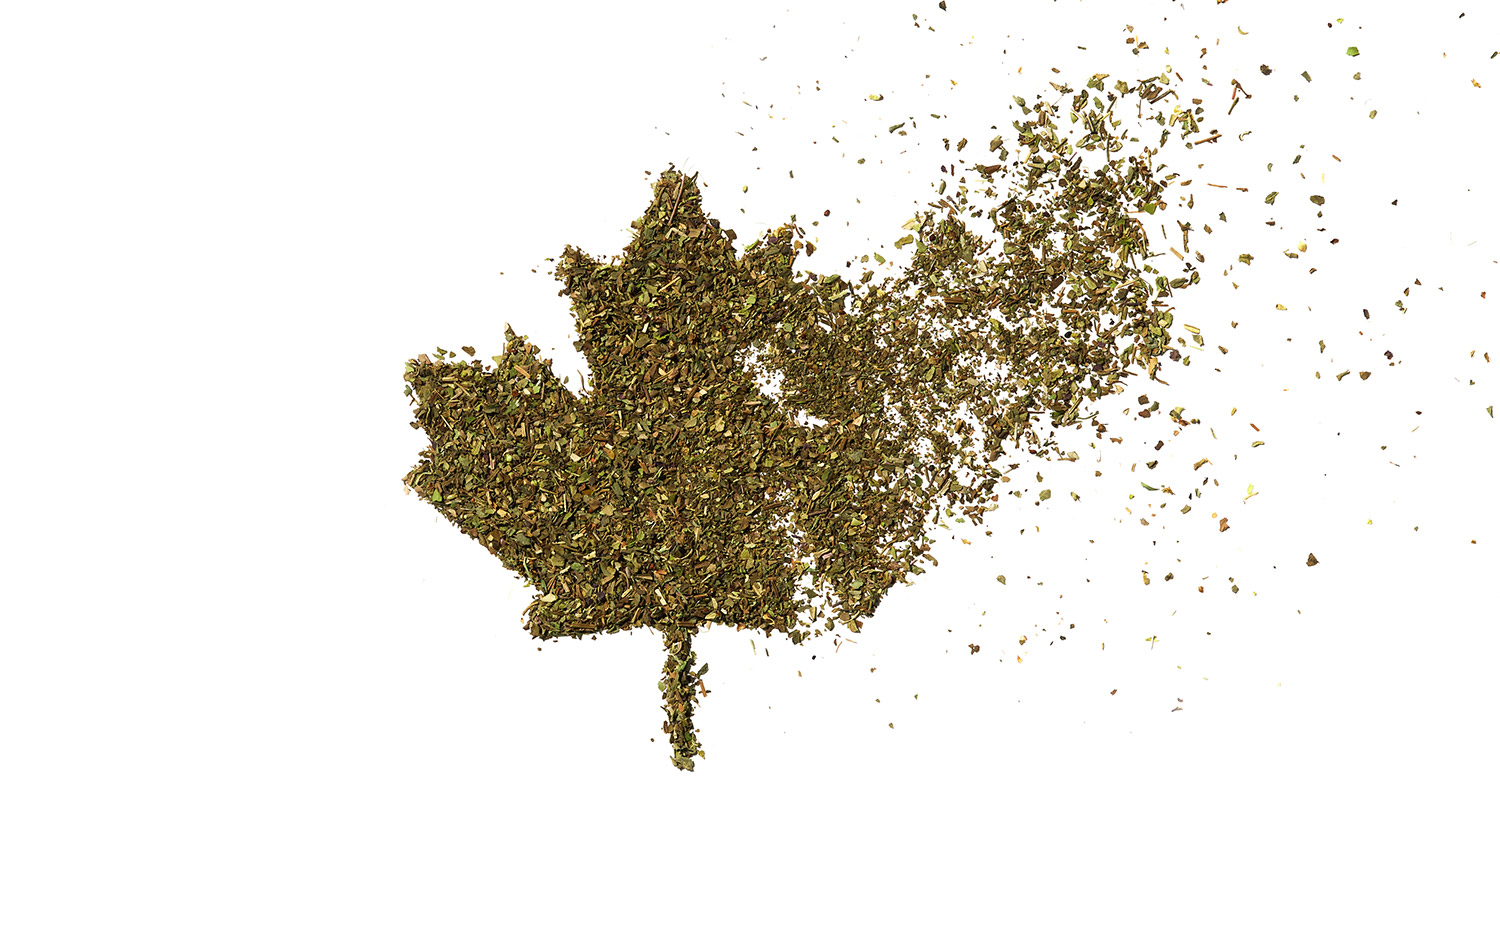 Cannabis debris in the shape of the Canadian maple leaf